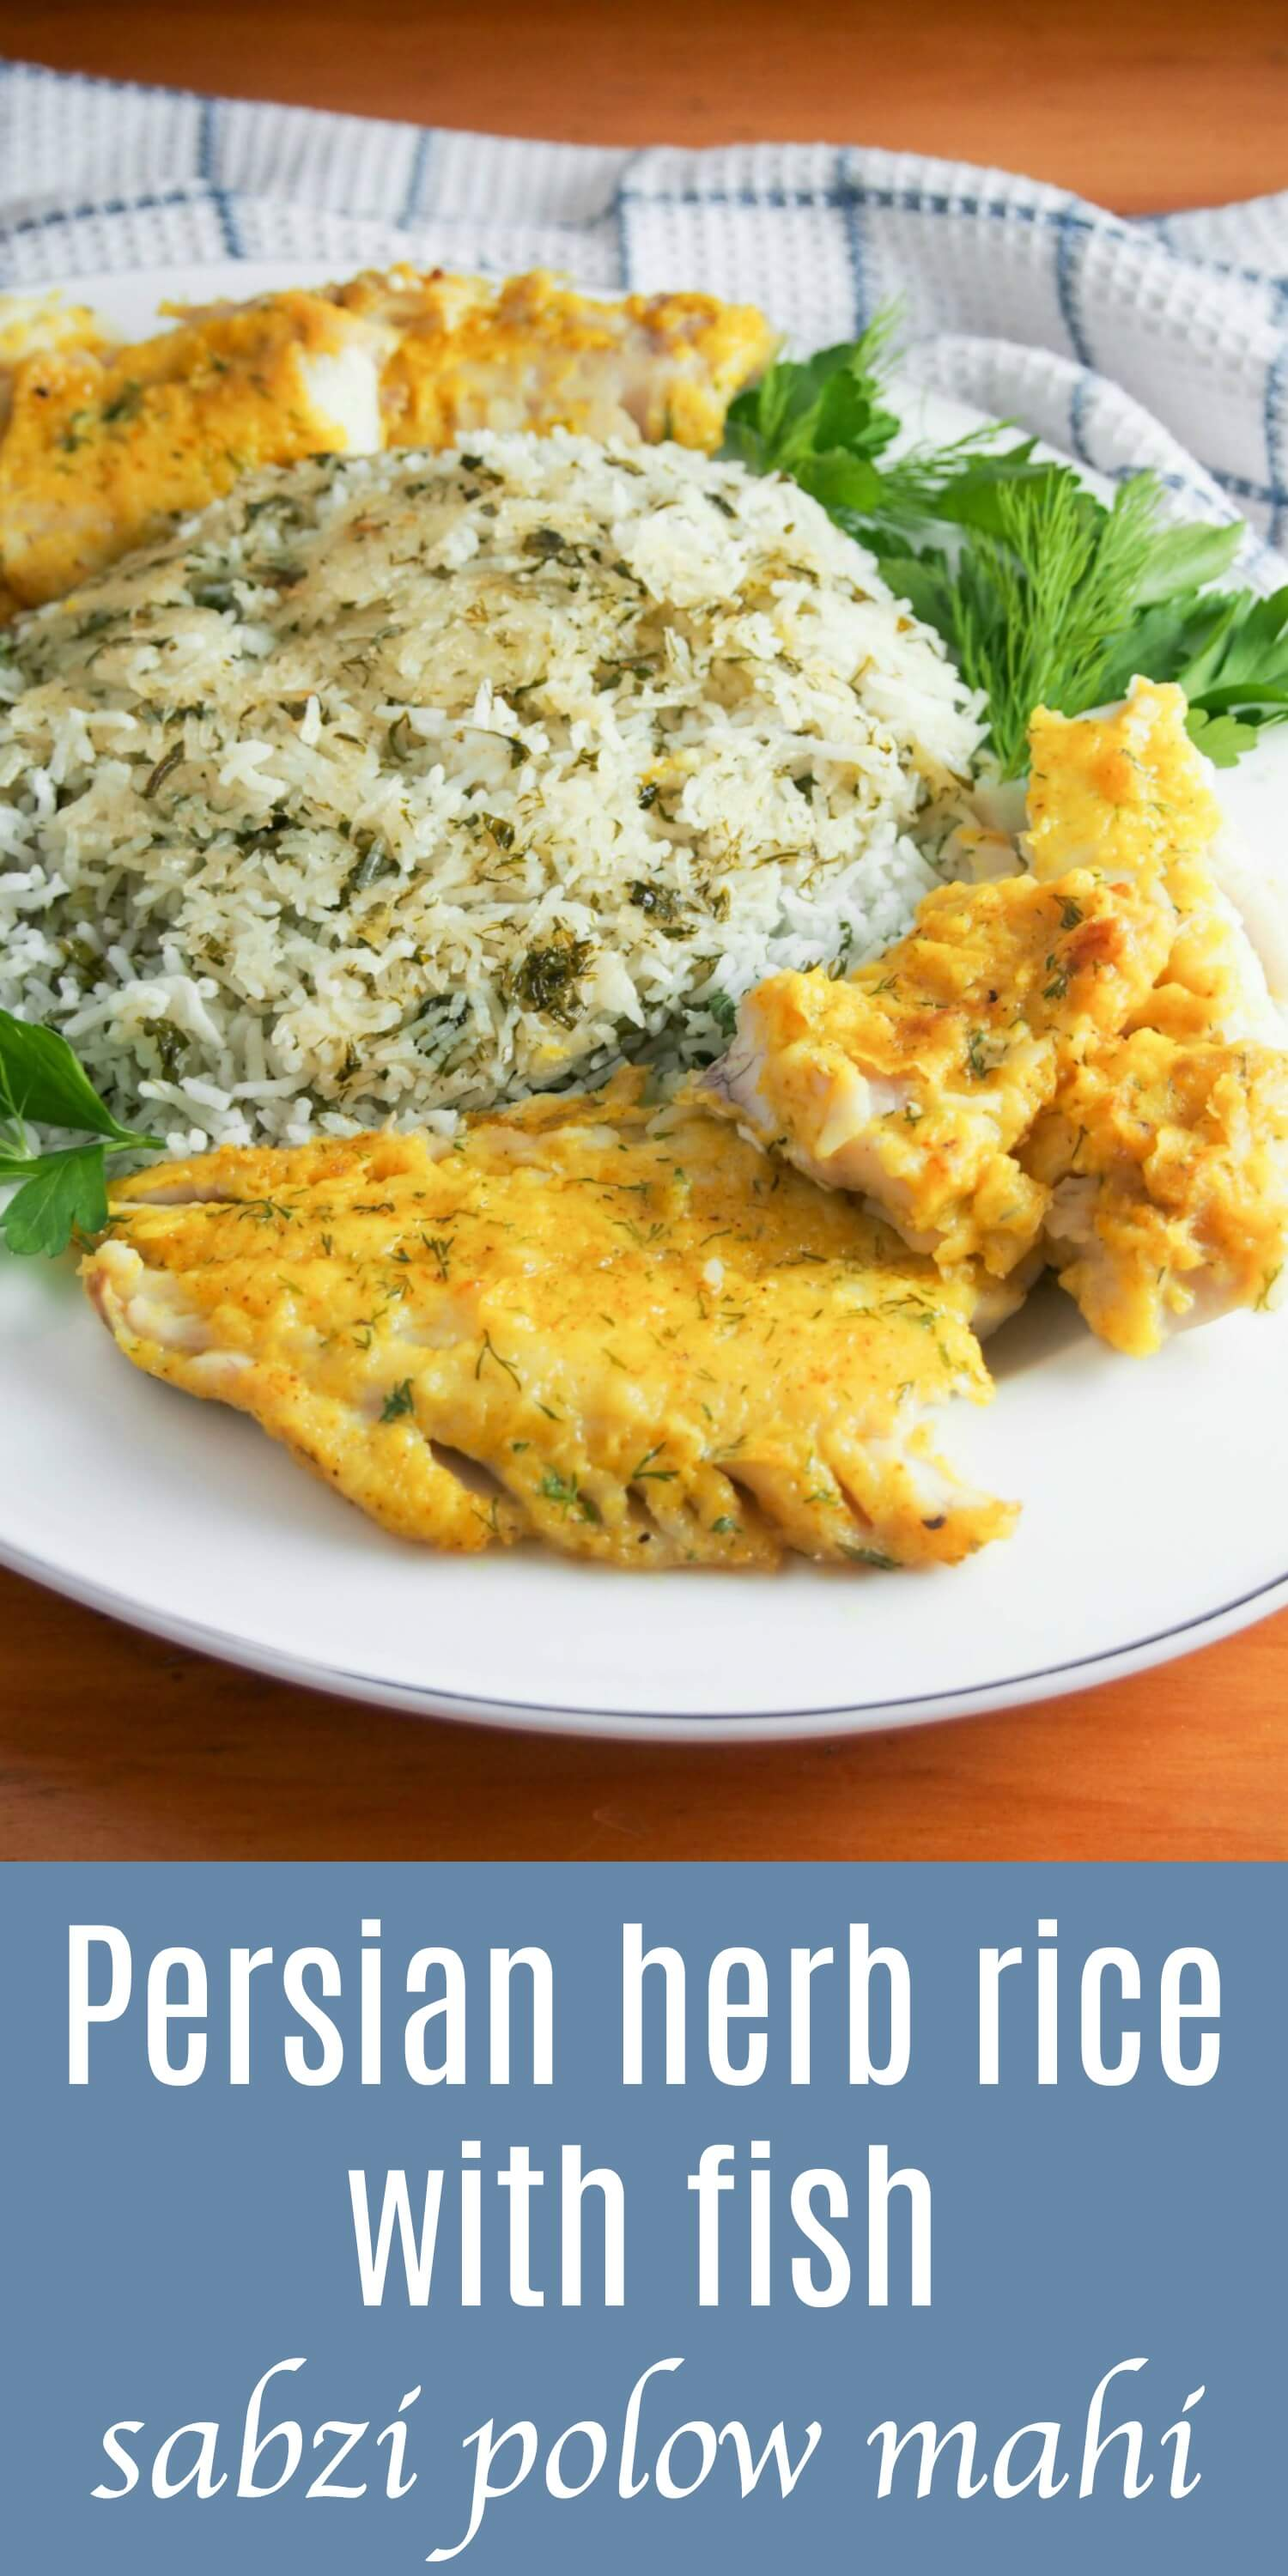 Persian herb rice with fish, 'sabzi polow mahi', is a popular dish served for Nowruz which combines some of the most symbolic foods of the celebration into a delicious, fresh and healthy meal. It's a dish that's delicious any time. #Persianfood #fish #herbs #nowruz